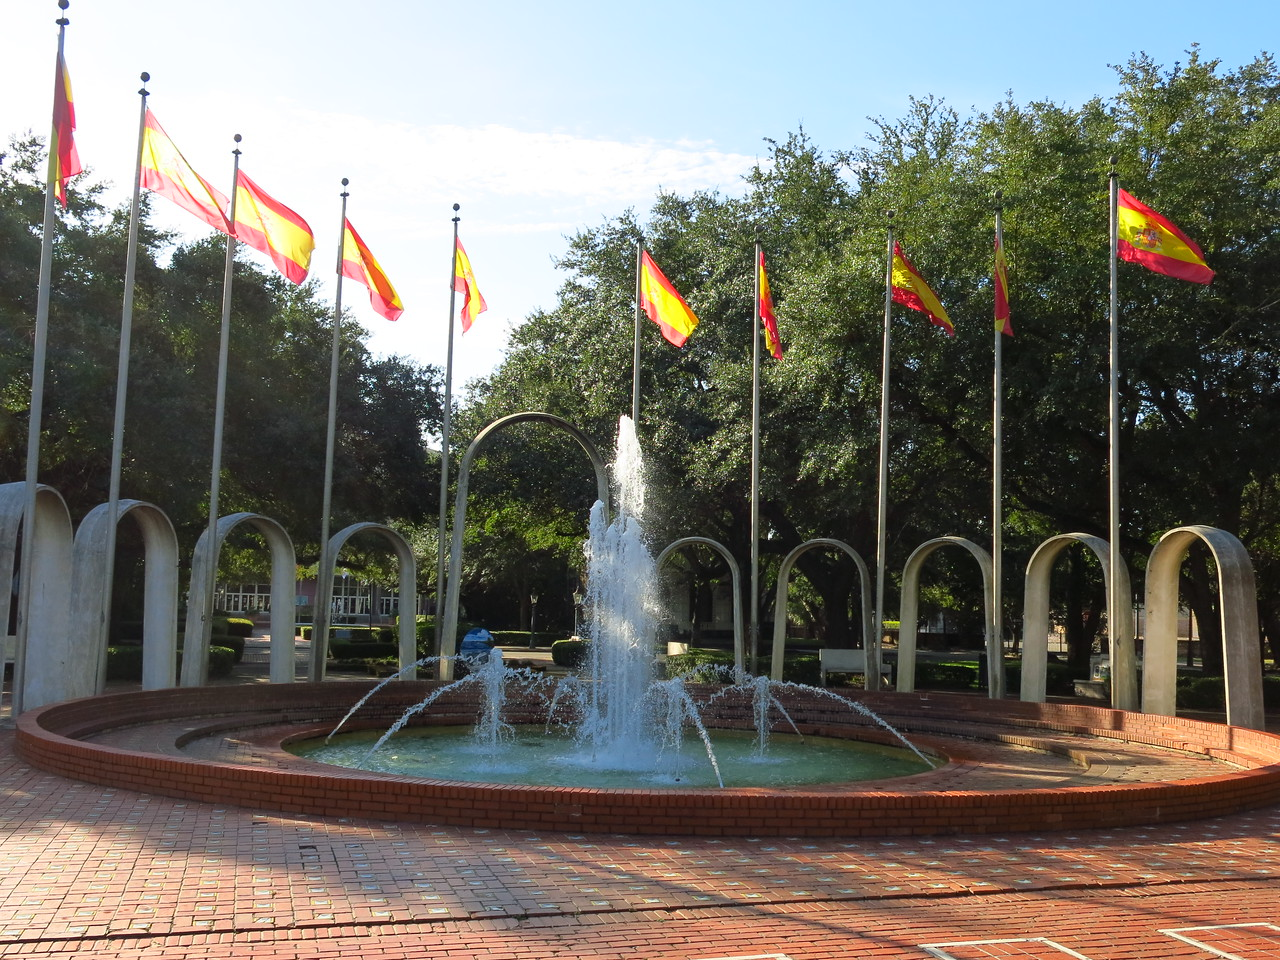 Fountain in Spanish Plaza